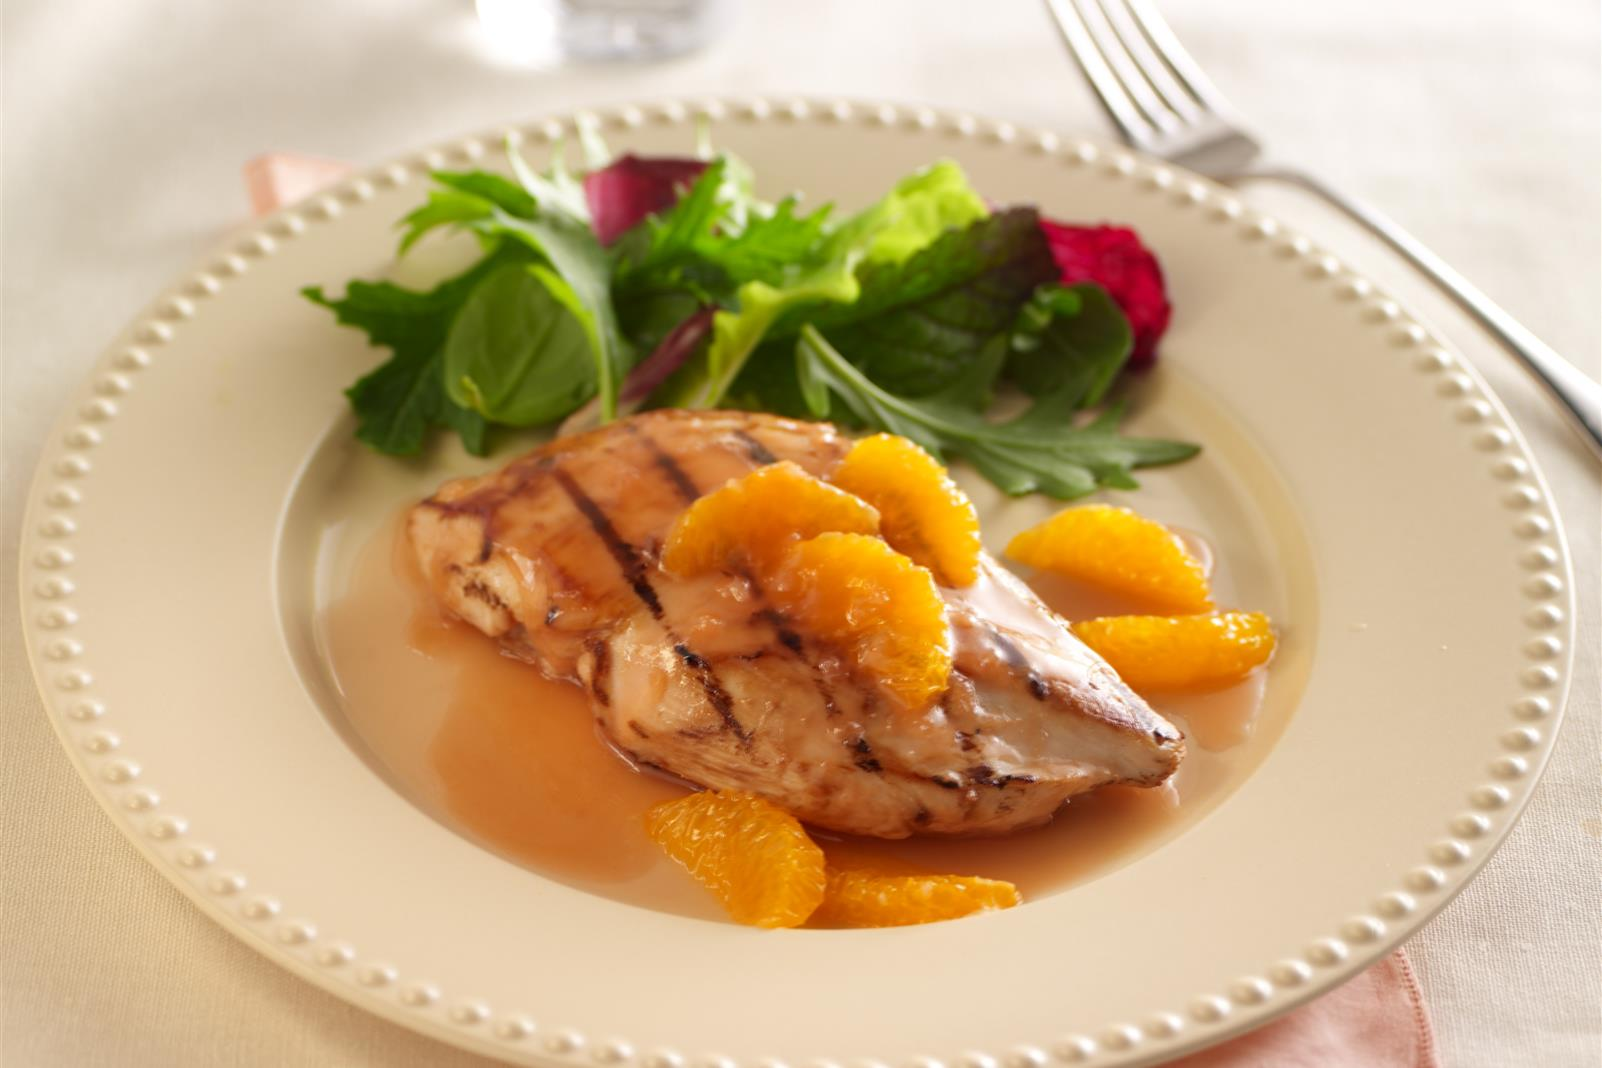 Grilled Chicken with Grapefruit Clementine Marinade